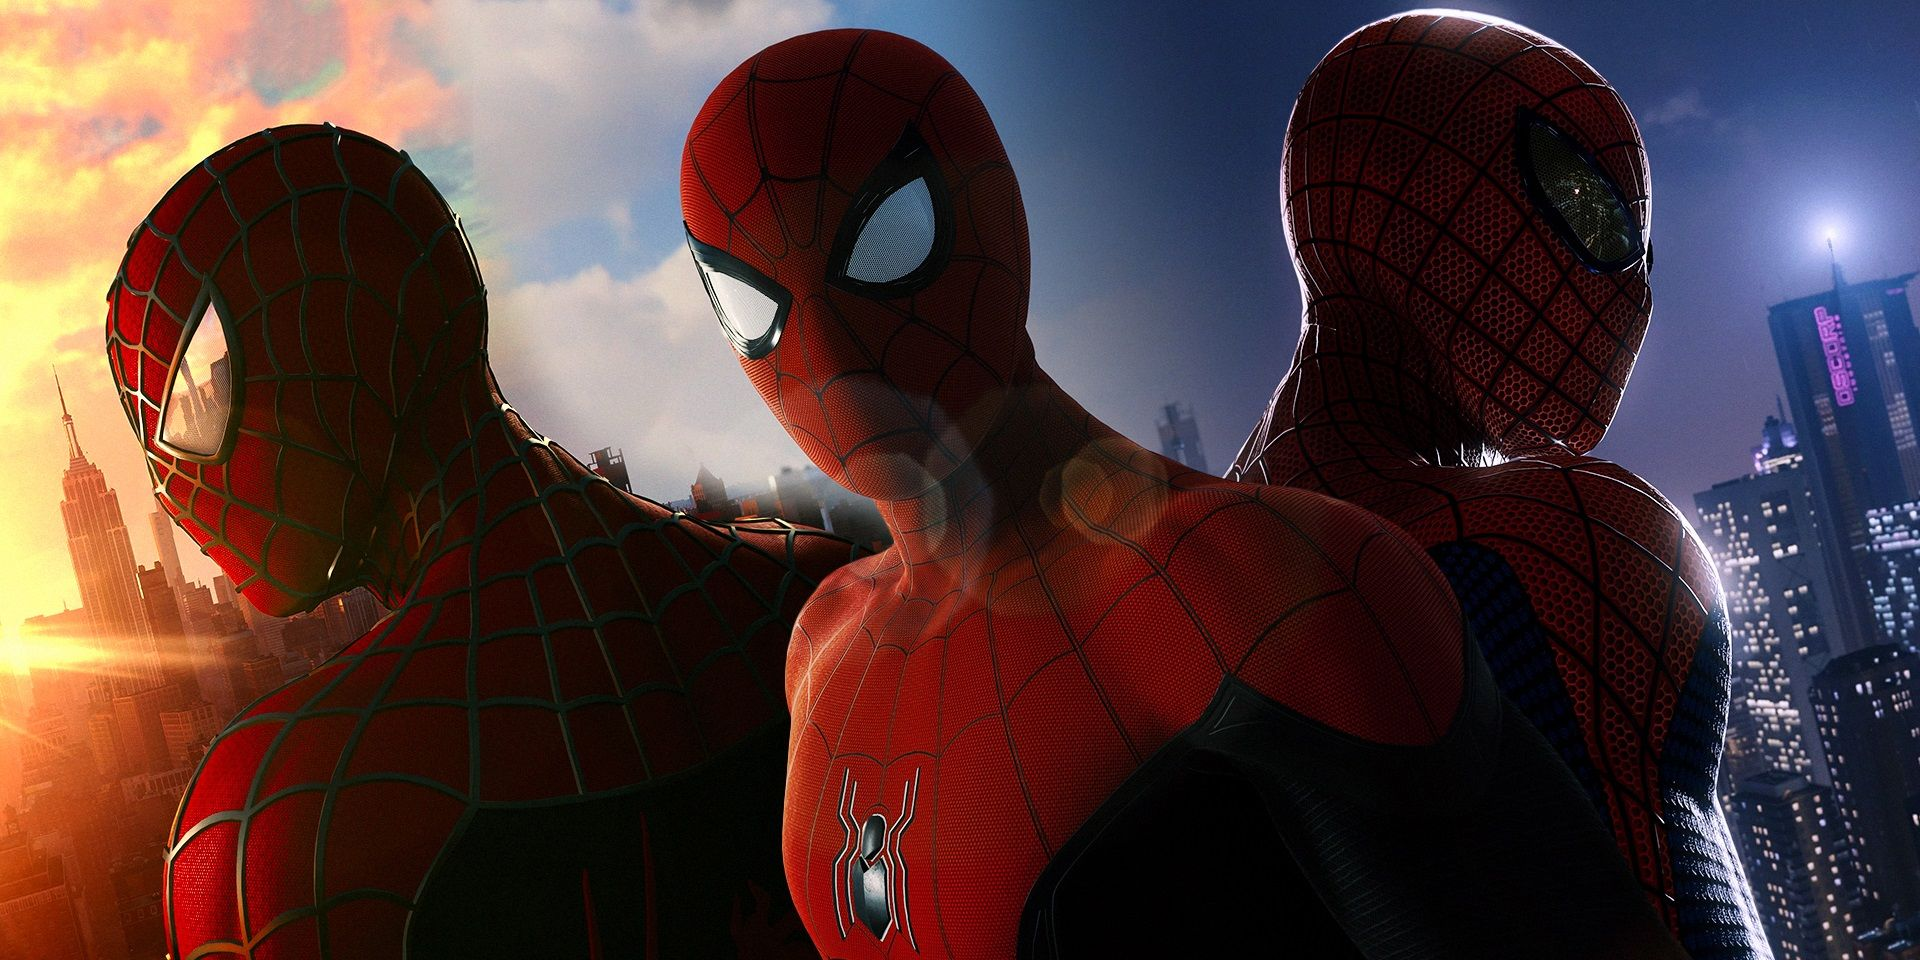 Spider Man No Way Home May Reveal a Major Theories About Avengers 5